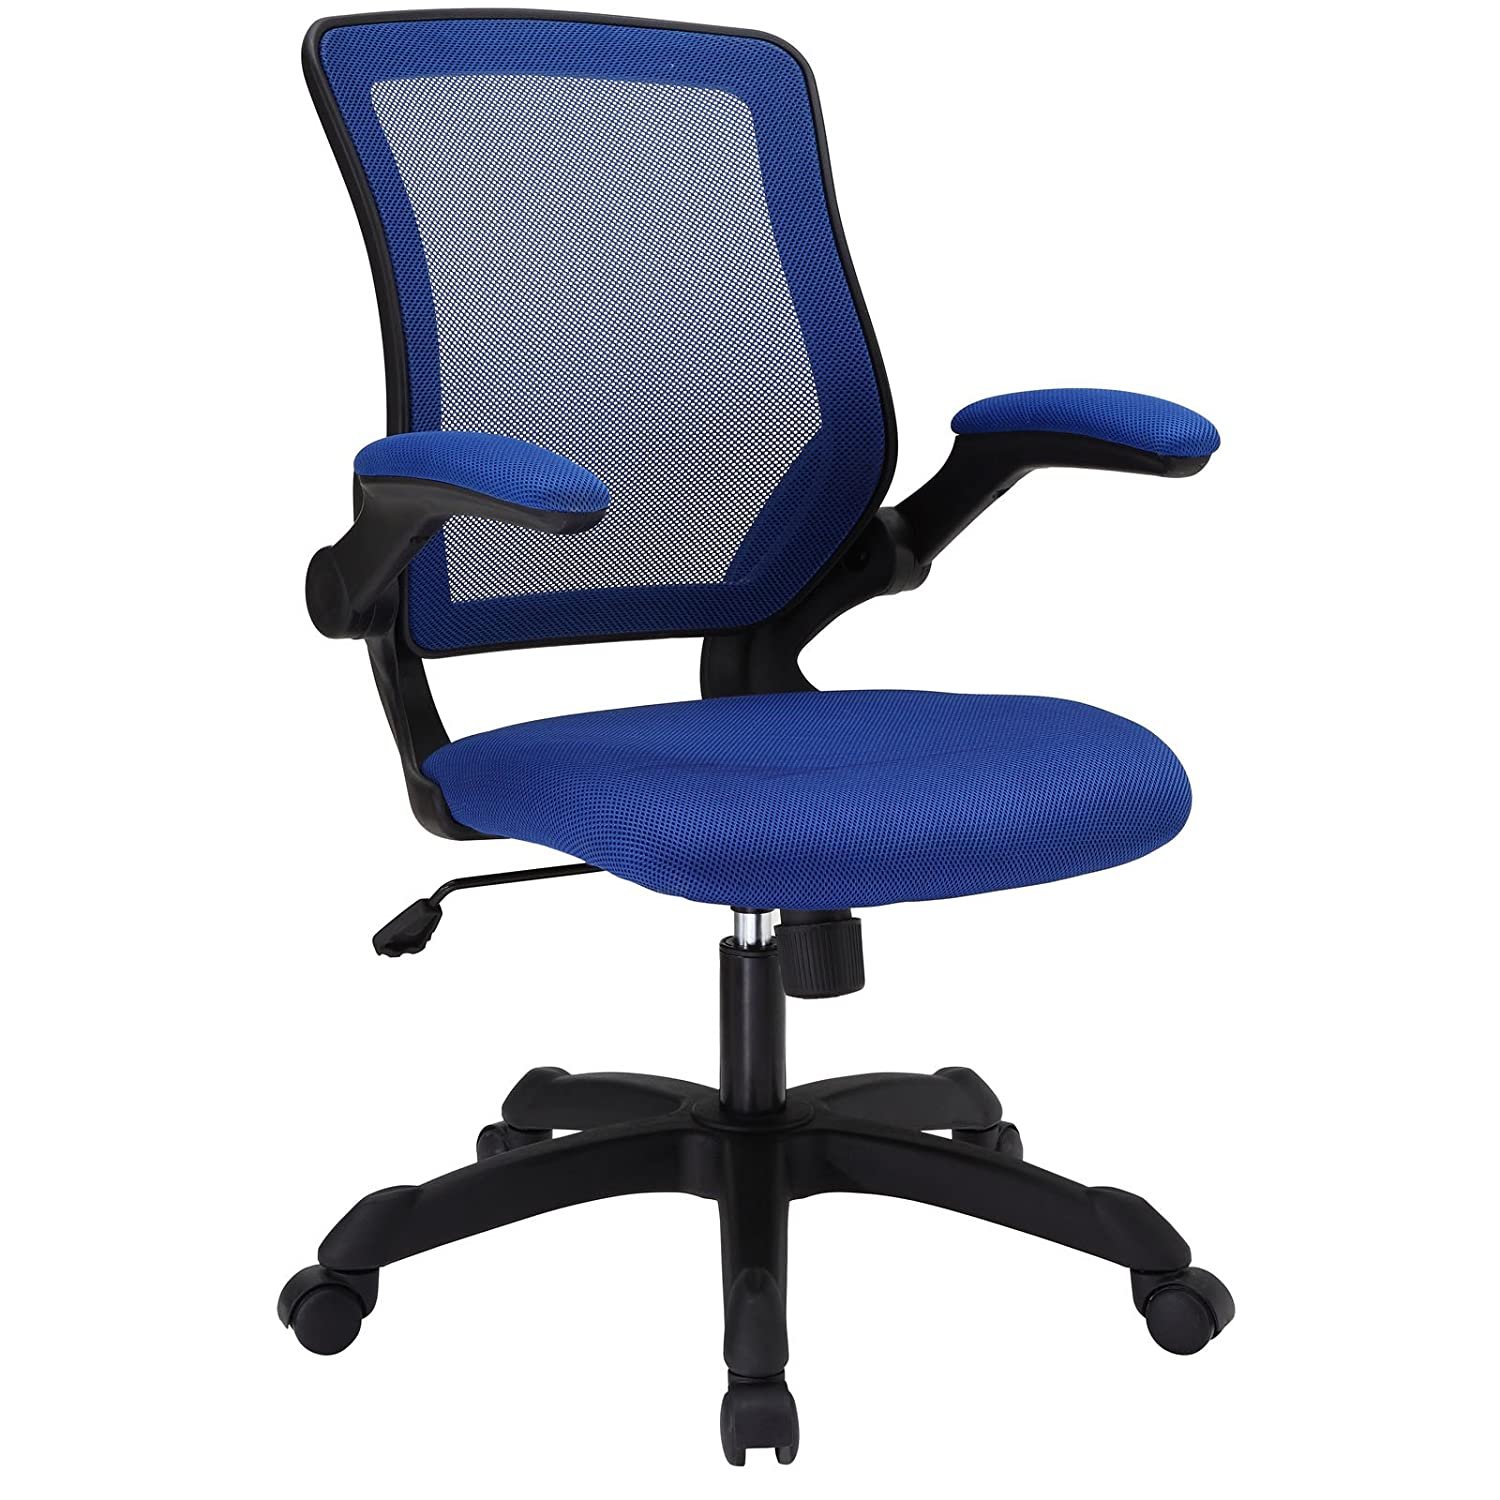 colored office chairs. Amazon.com: Modway Veer Office Chair With Mesh Back And Blue Vinyl Seat Flip-Up Arms - Ergonomic Desk Computer Chair: Kitchen \u0026 Dining Colored Chairs R